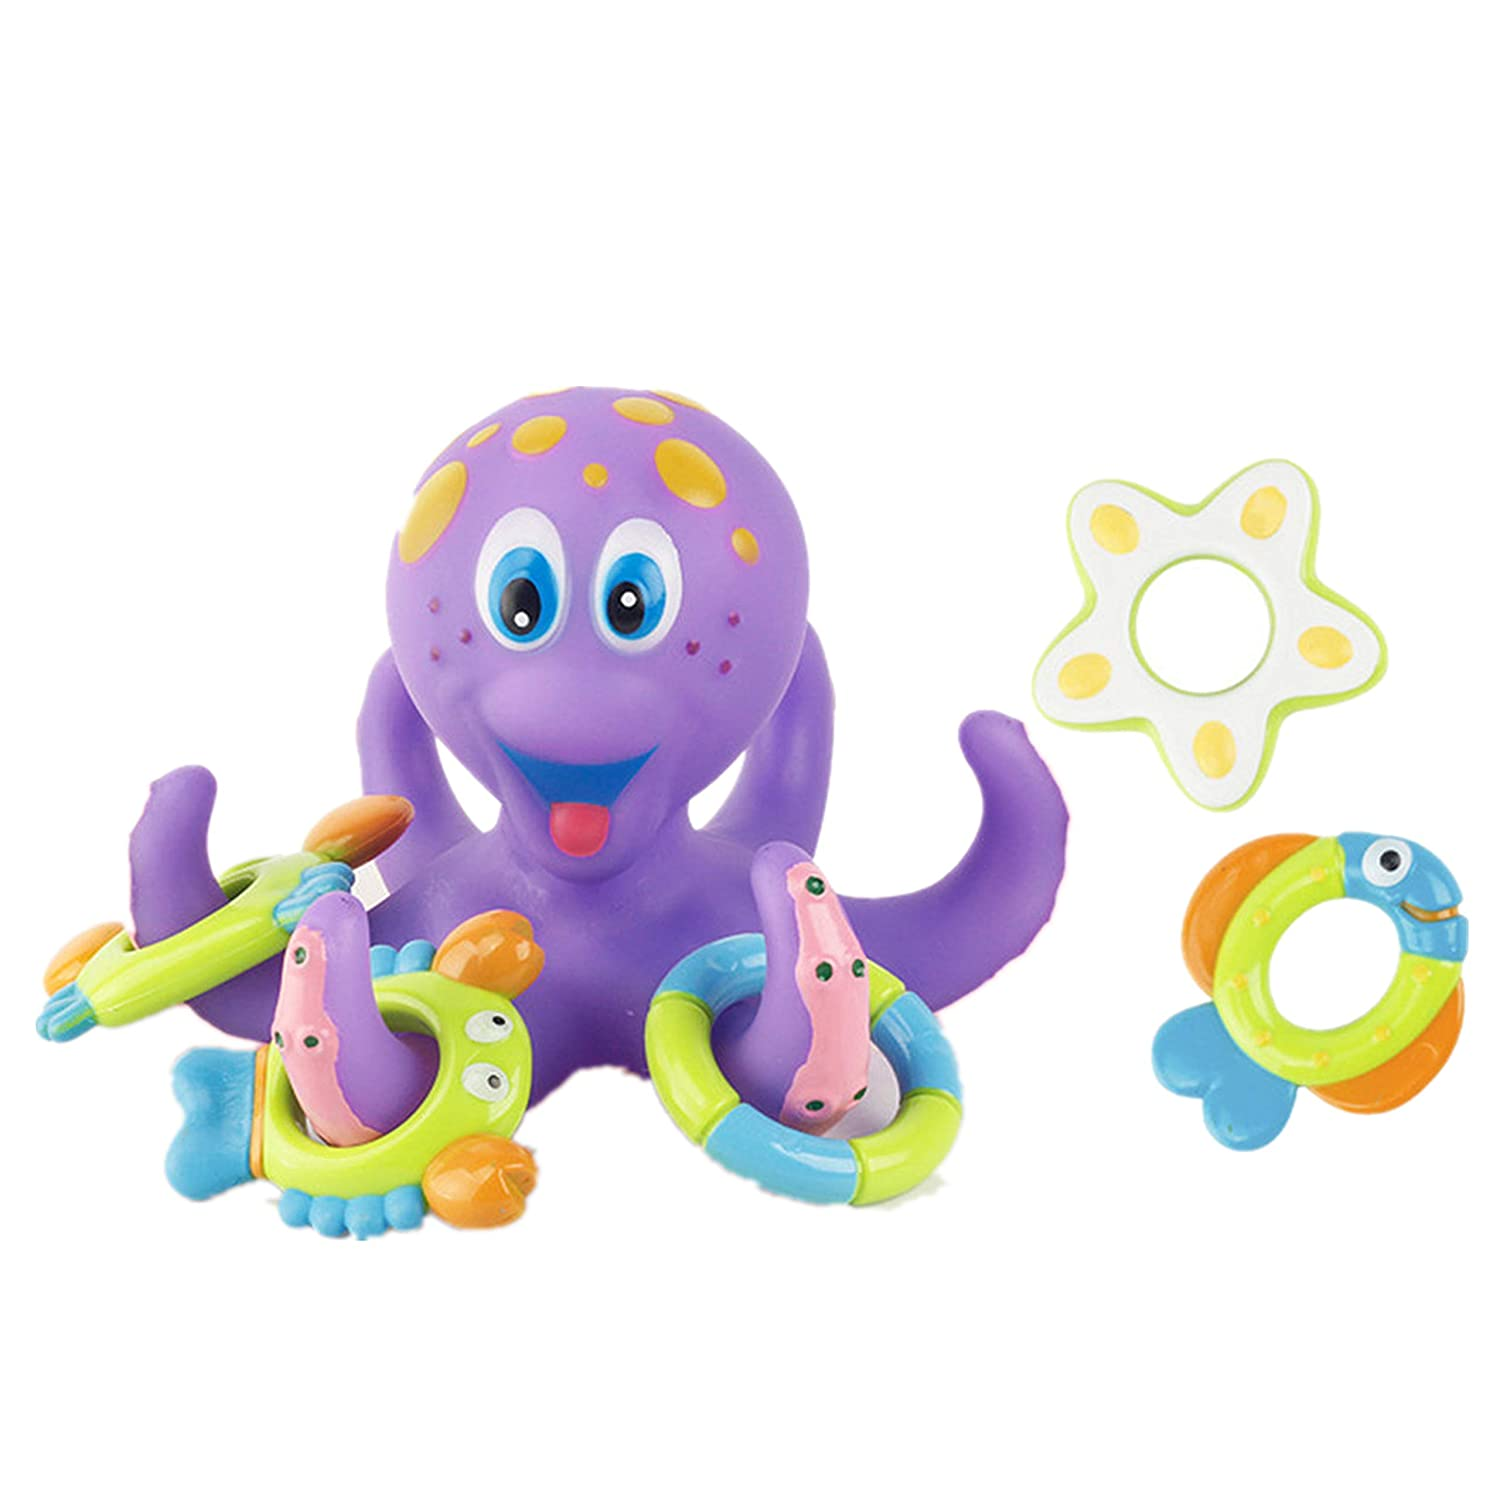 Amaping Cute Octopus Bathtime Fun Toys for Baby Bath Catching & Floating Bathtub Toy with 5 Rings Novelty around the Tentacles (Purple)